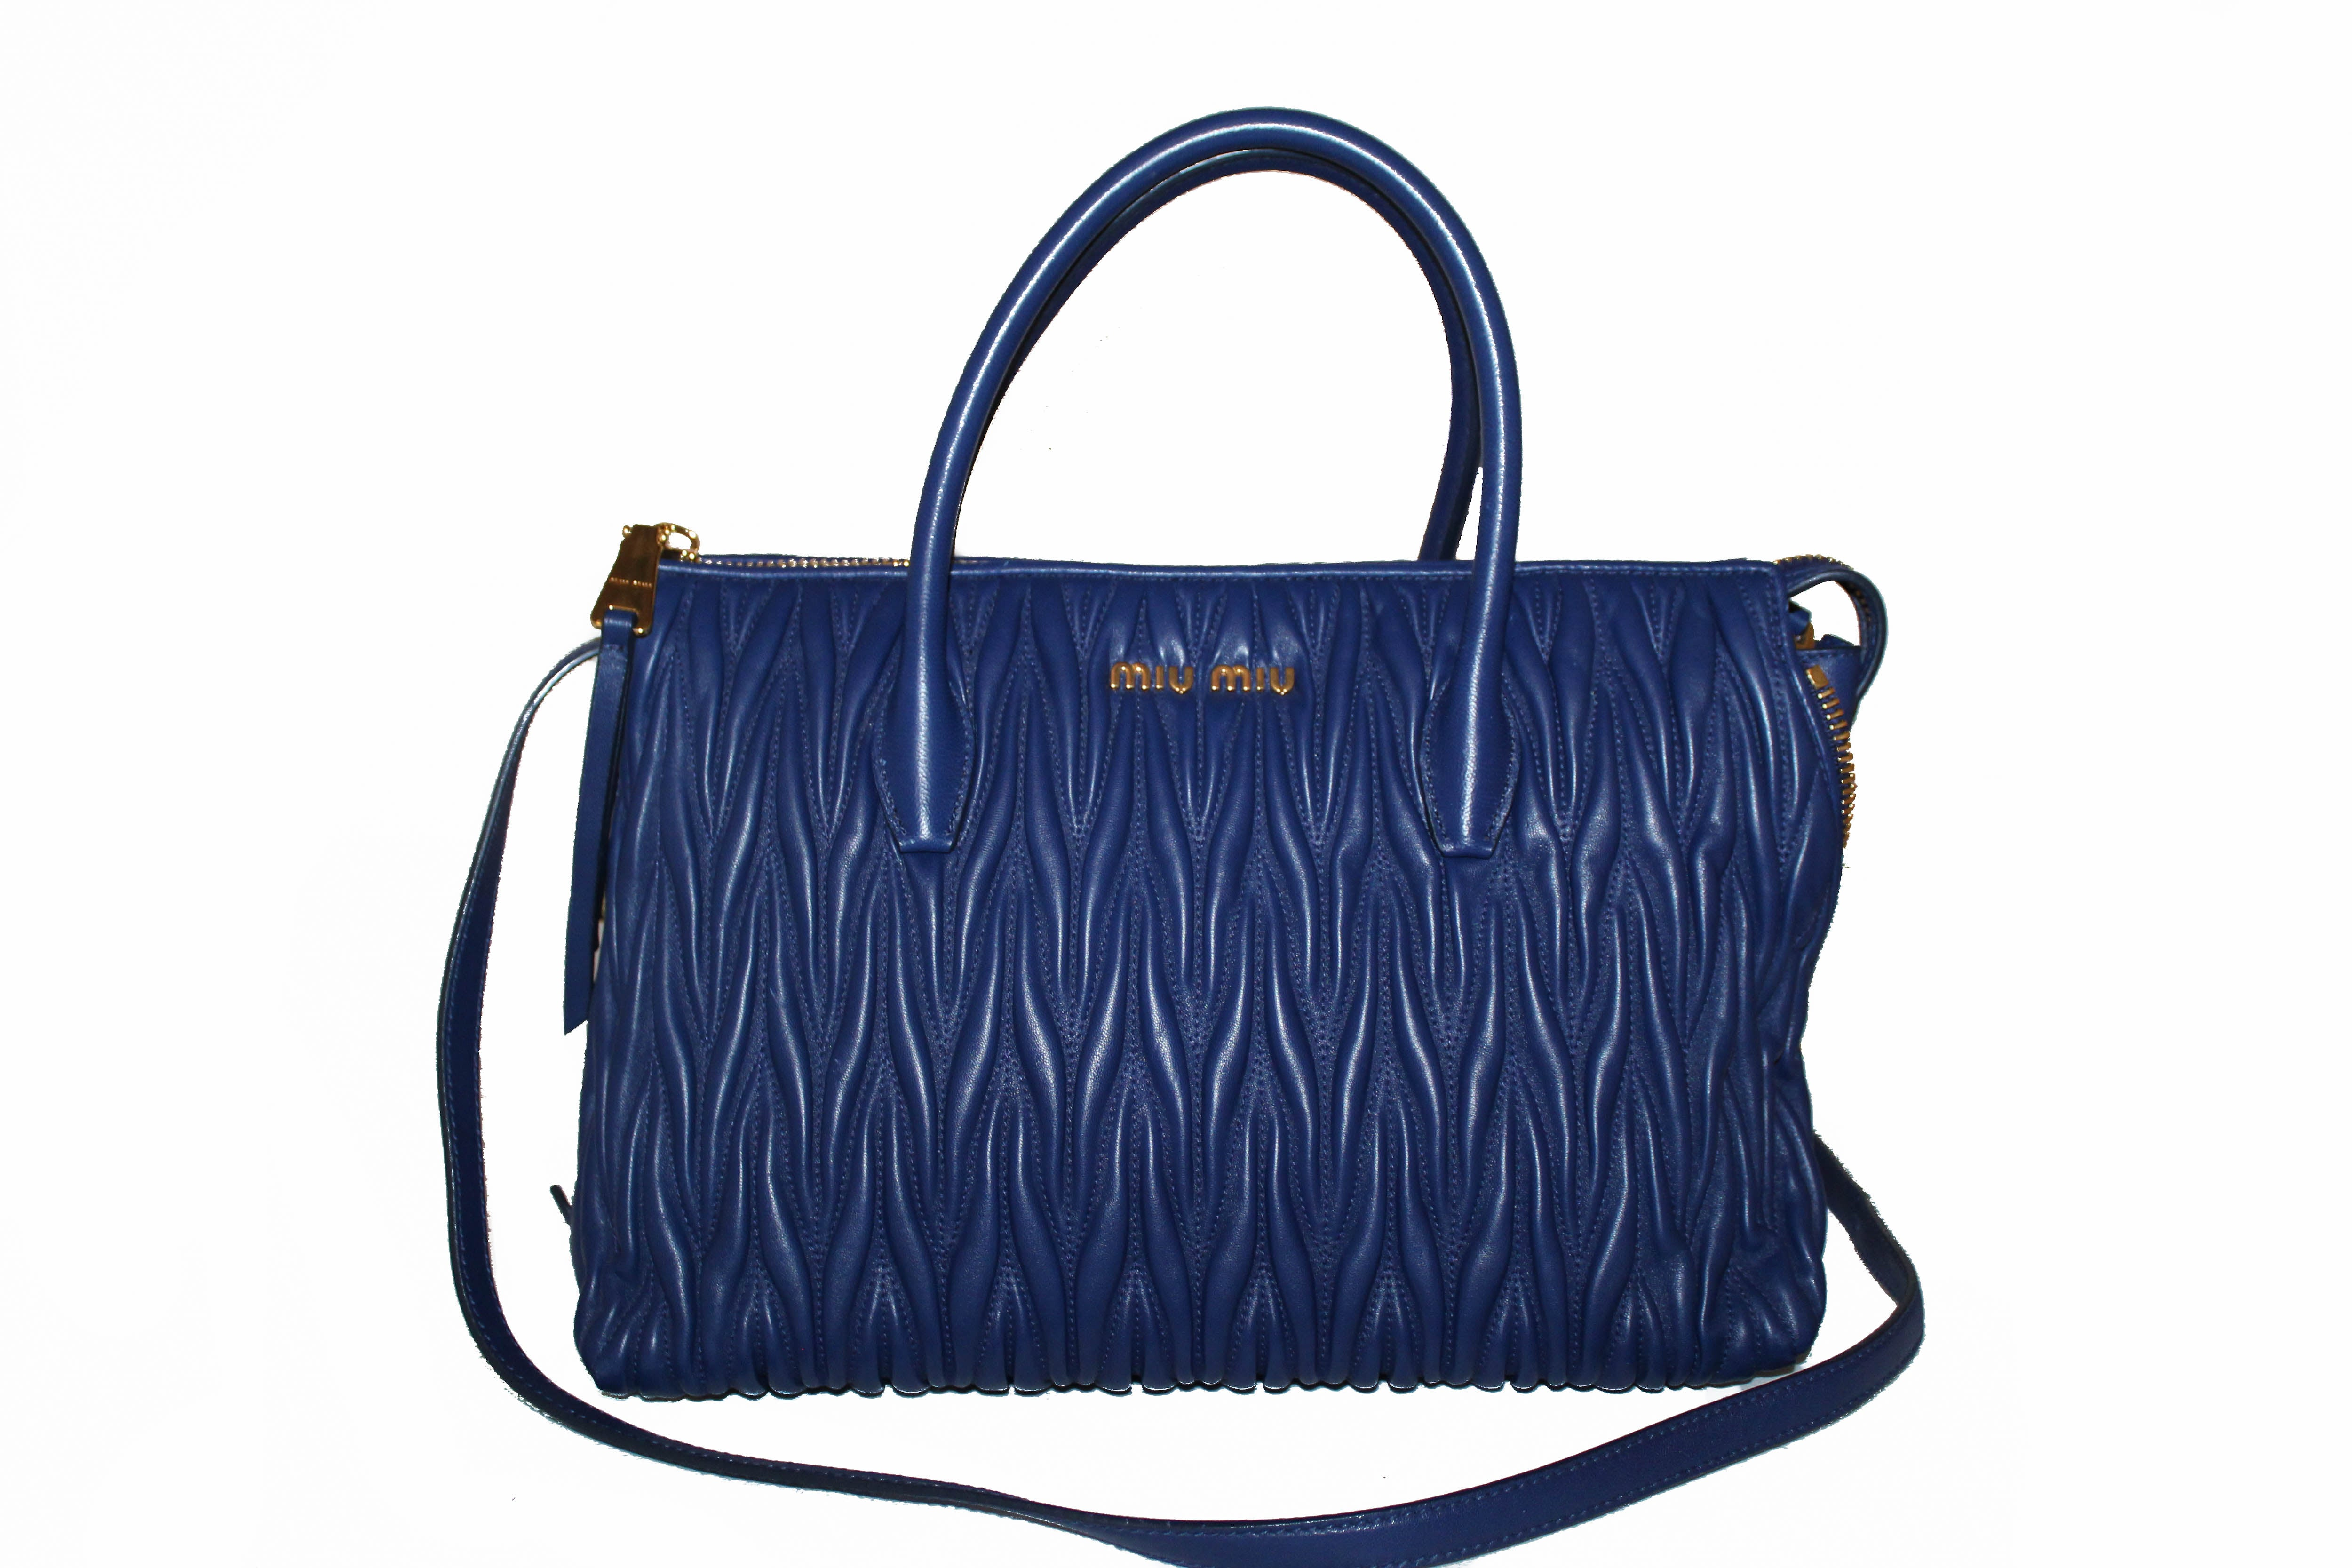 Authentic Miu Miu Blue Nappa Leather Maletasse Tote Bag with Long Strap